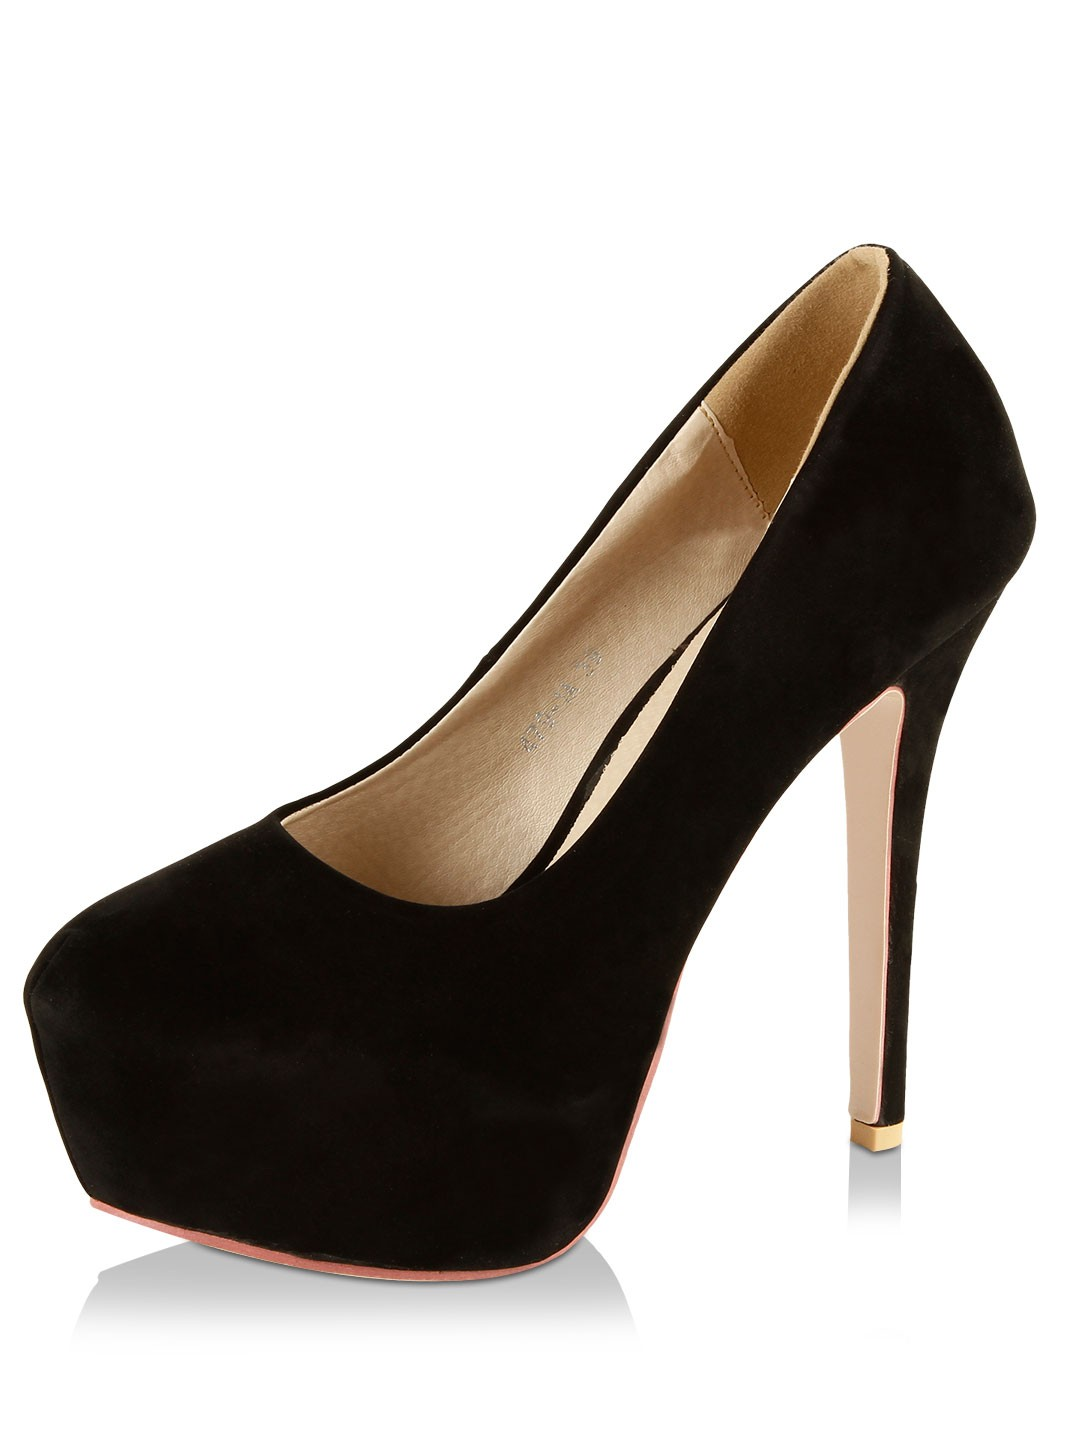 9 To Five Black Pumps In Suede Finish 1